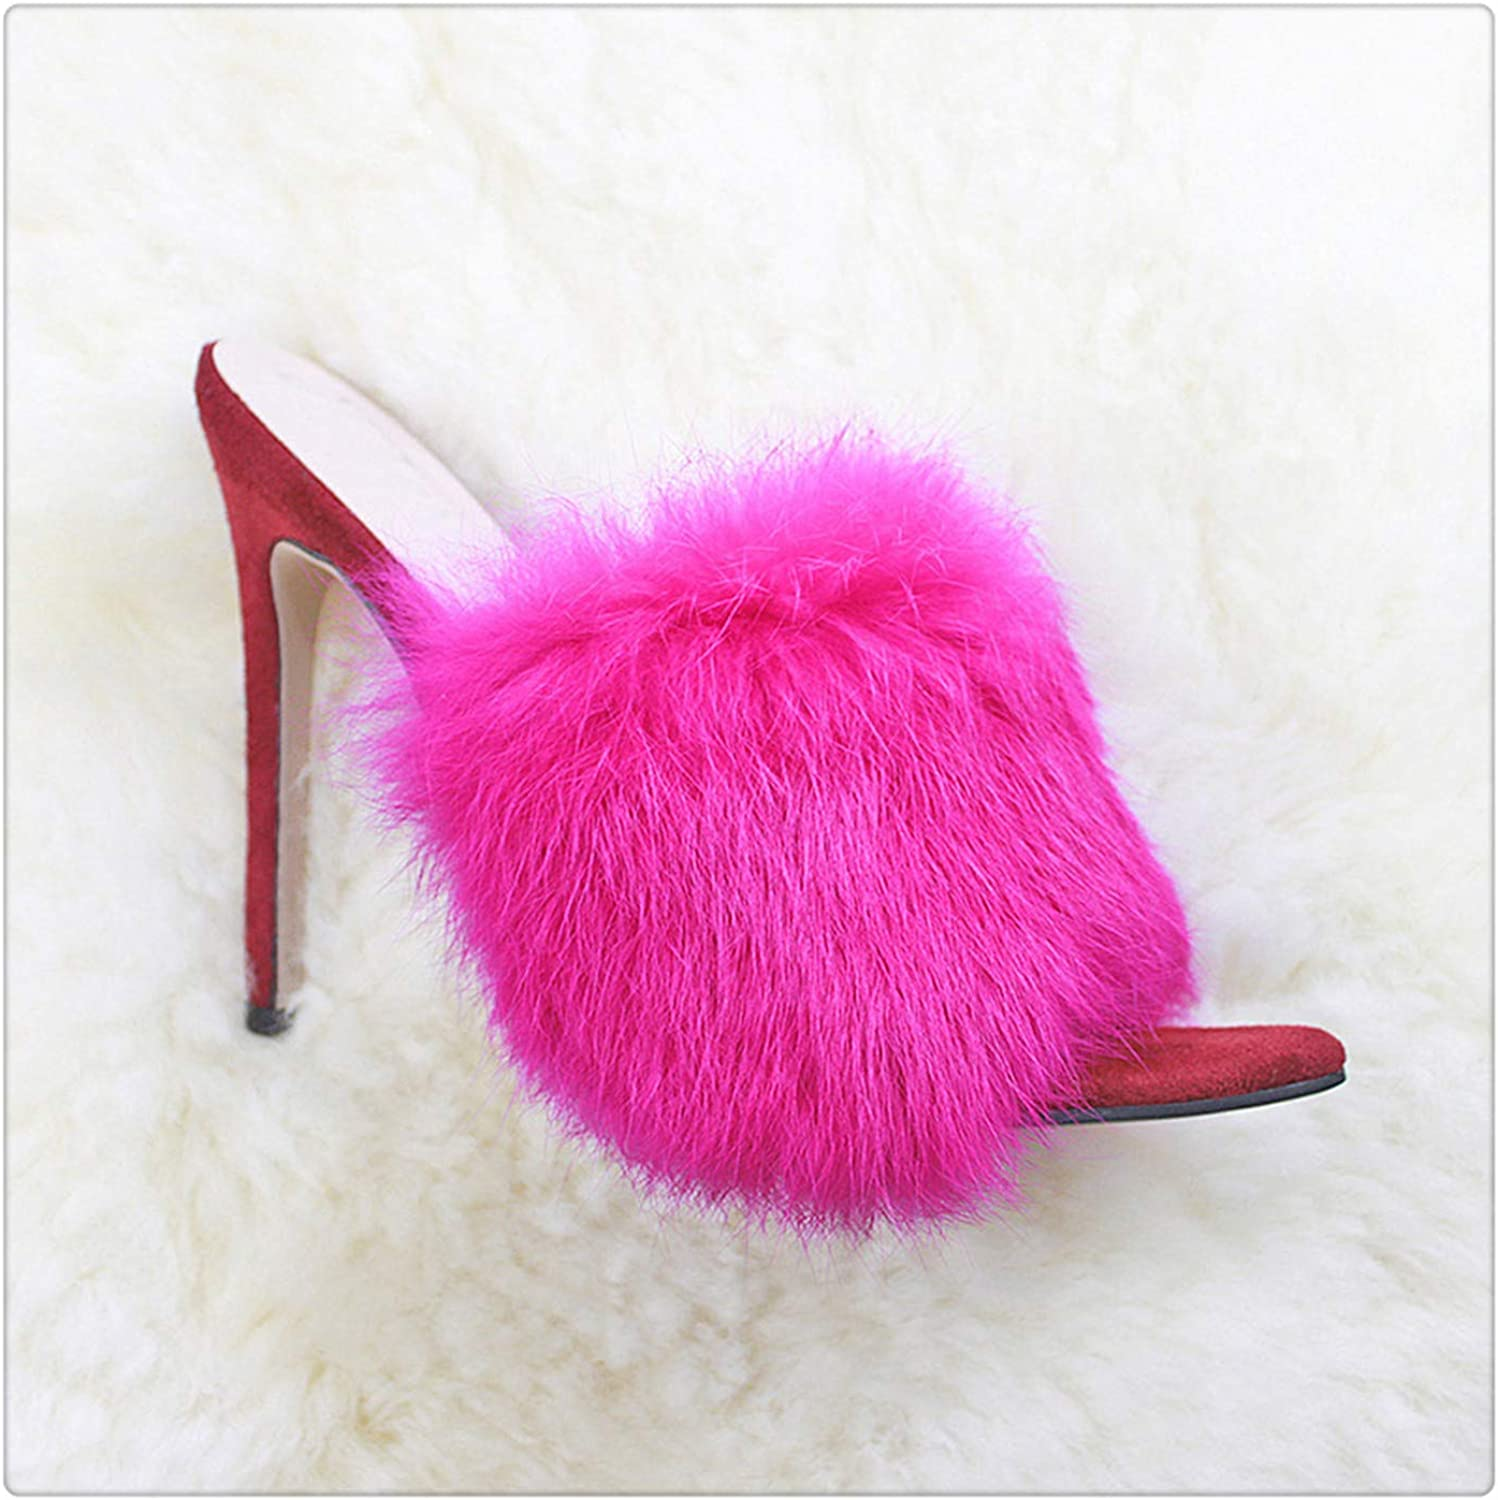 HANGGE& 2019 Fur Women's Pumps Heels shoes High Heel Slippers Women Big Large Size Pointed Toe Ladies Female Slides Fashion Woman shoes Red 9